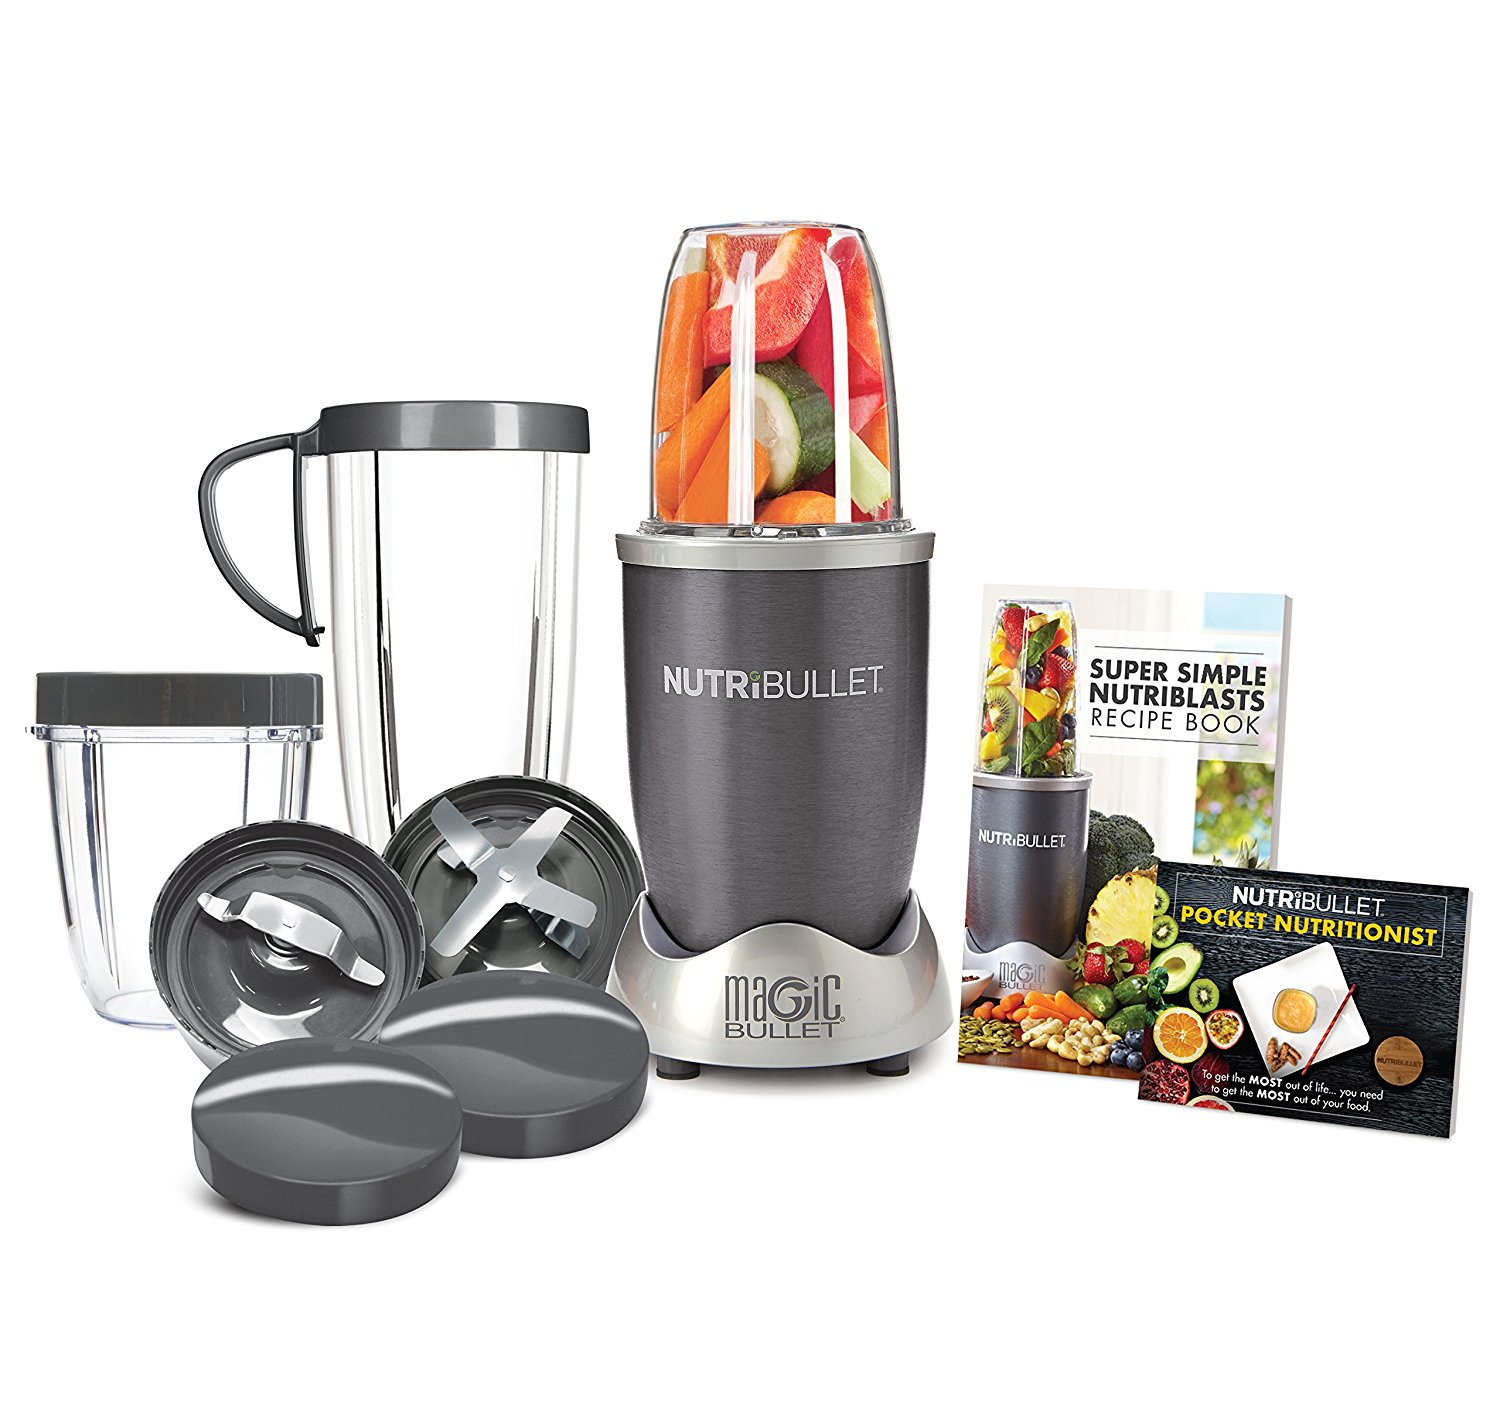 12-Piece High-Speed Blender/Mixer System, Gray (600 Watts)